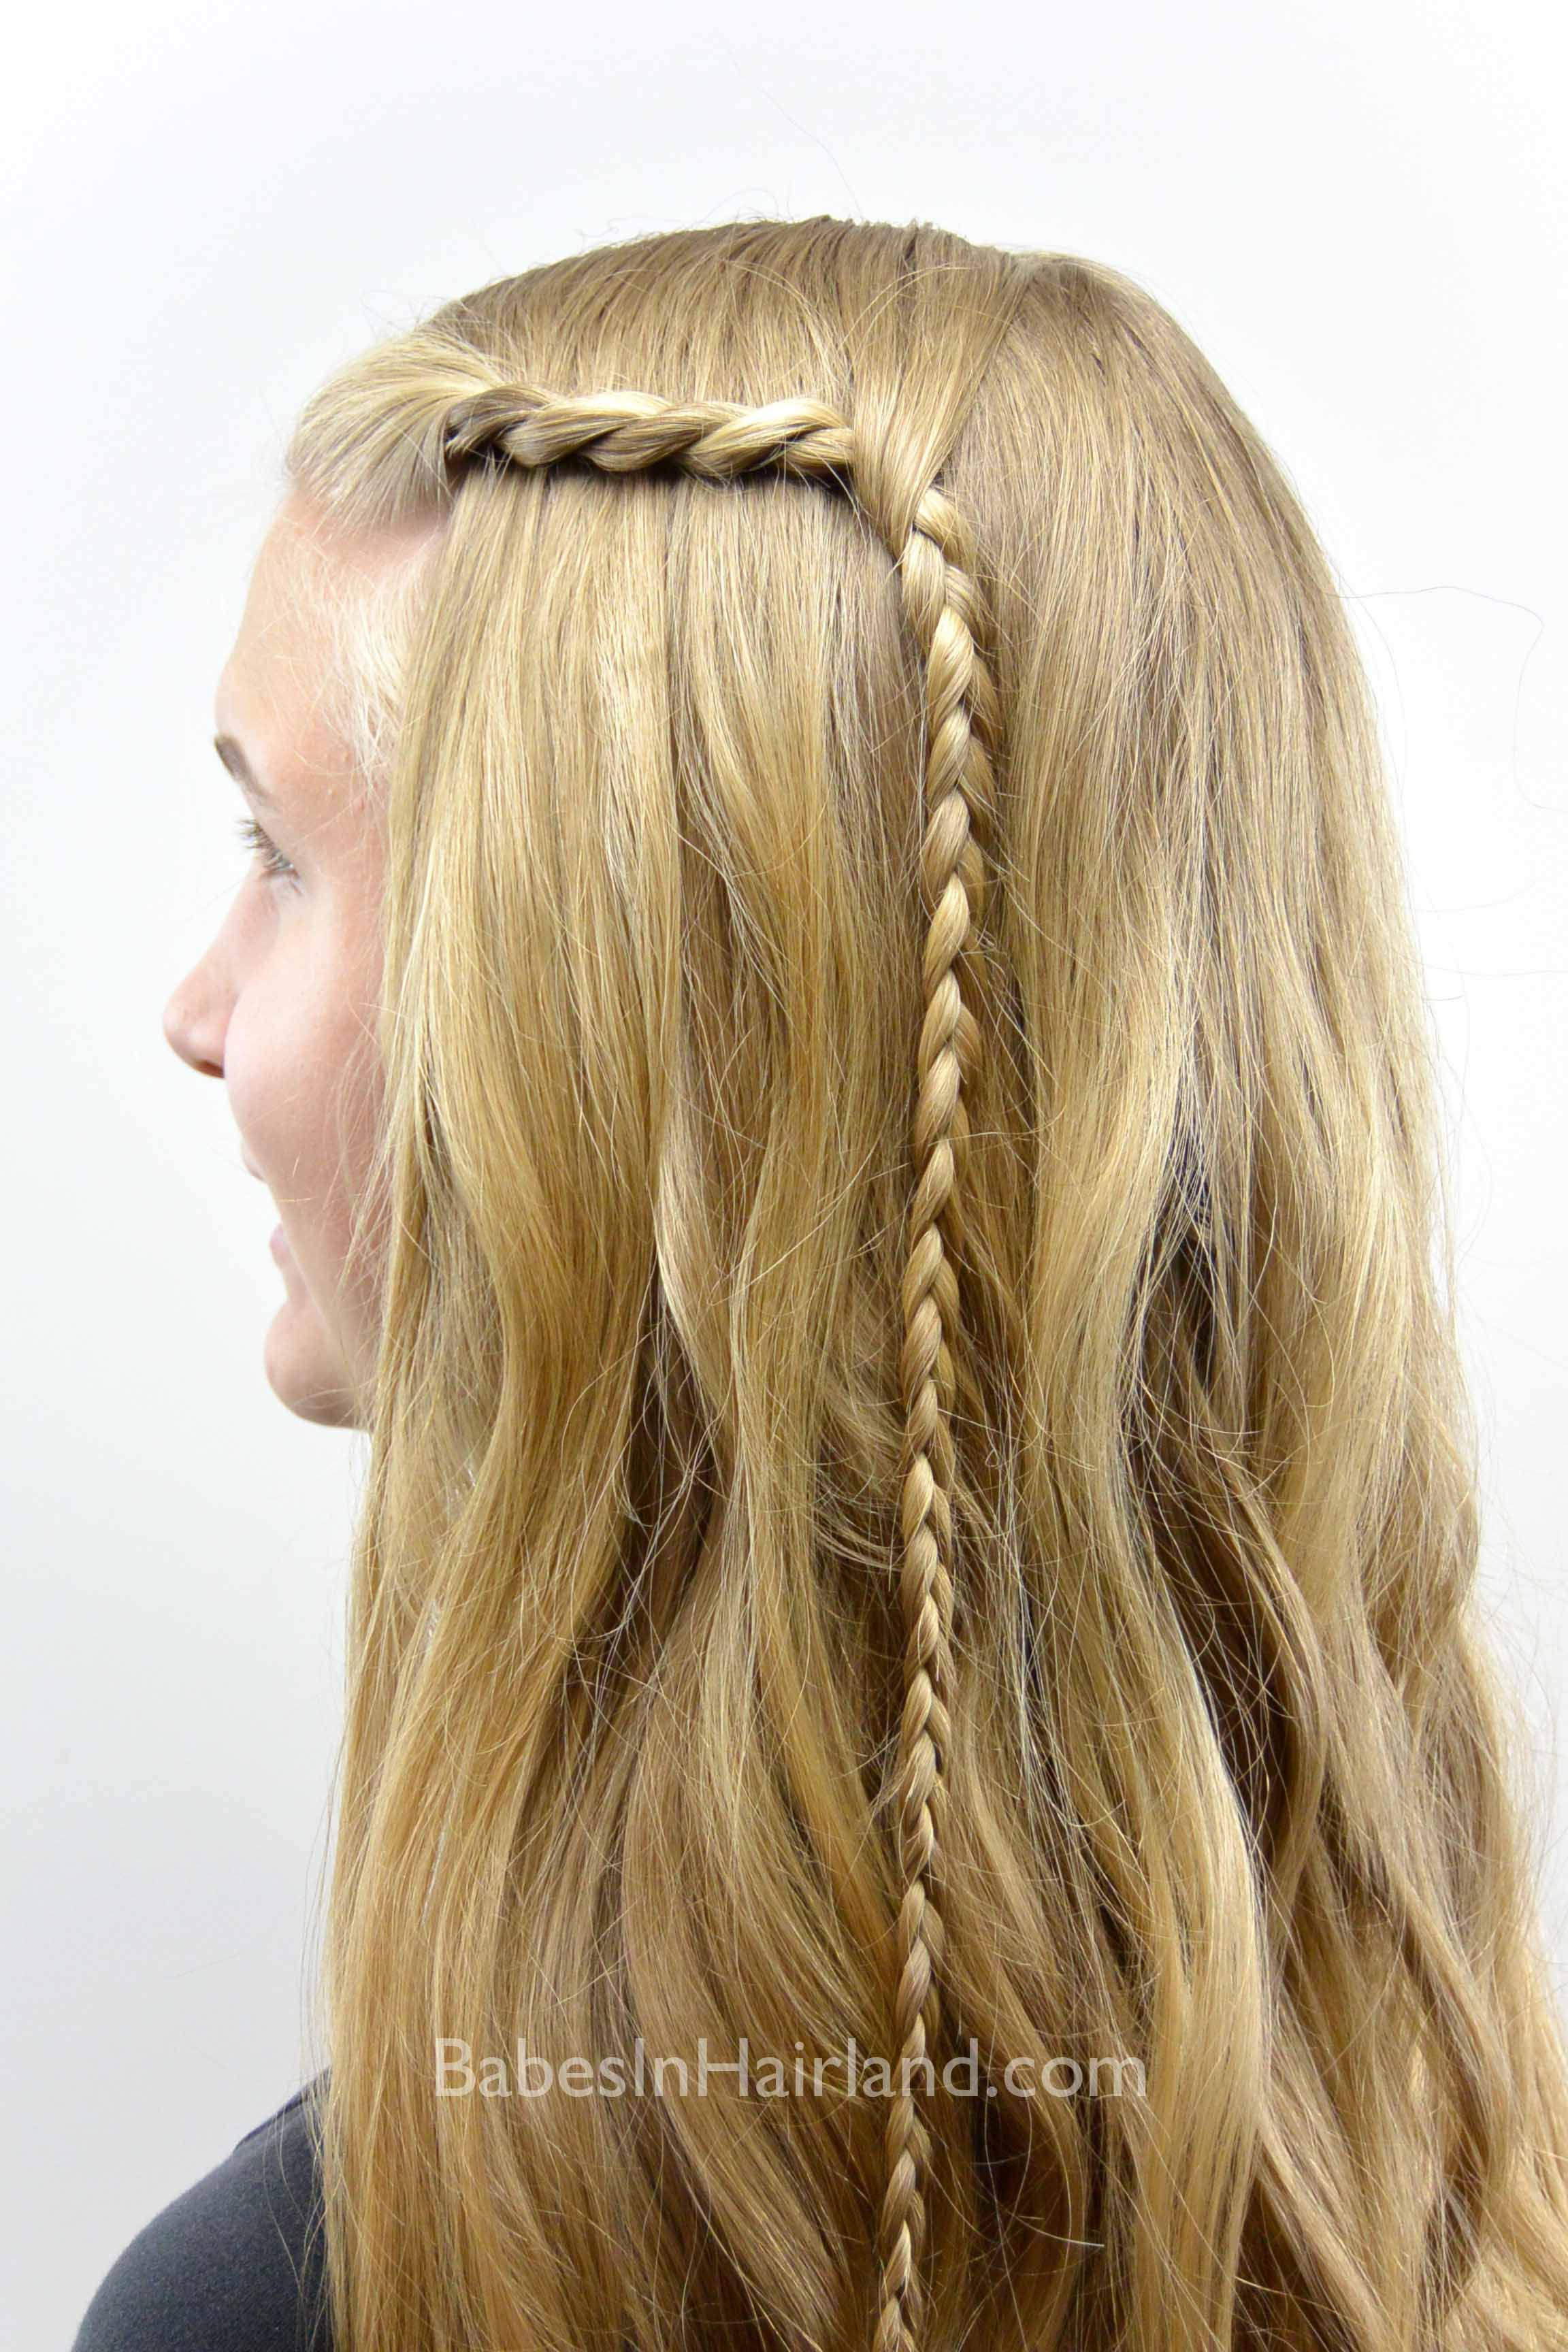 Cute easy hairstyles that kids can do - 25 Little Girl Hairstyles You Can Do Yourself Get Out Of Your